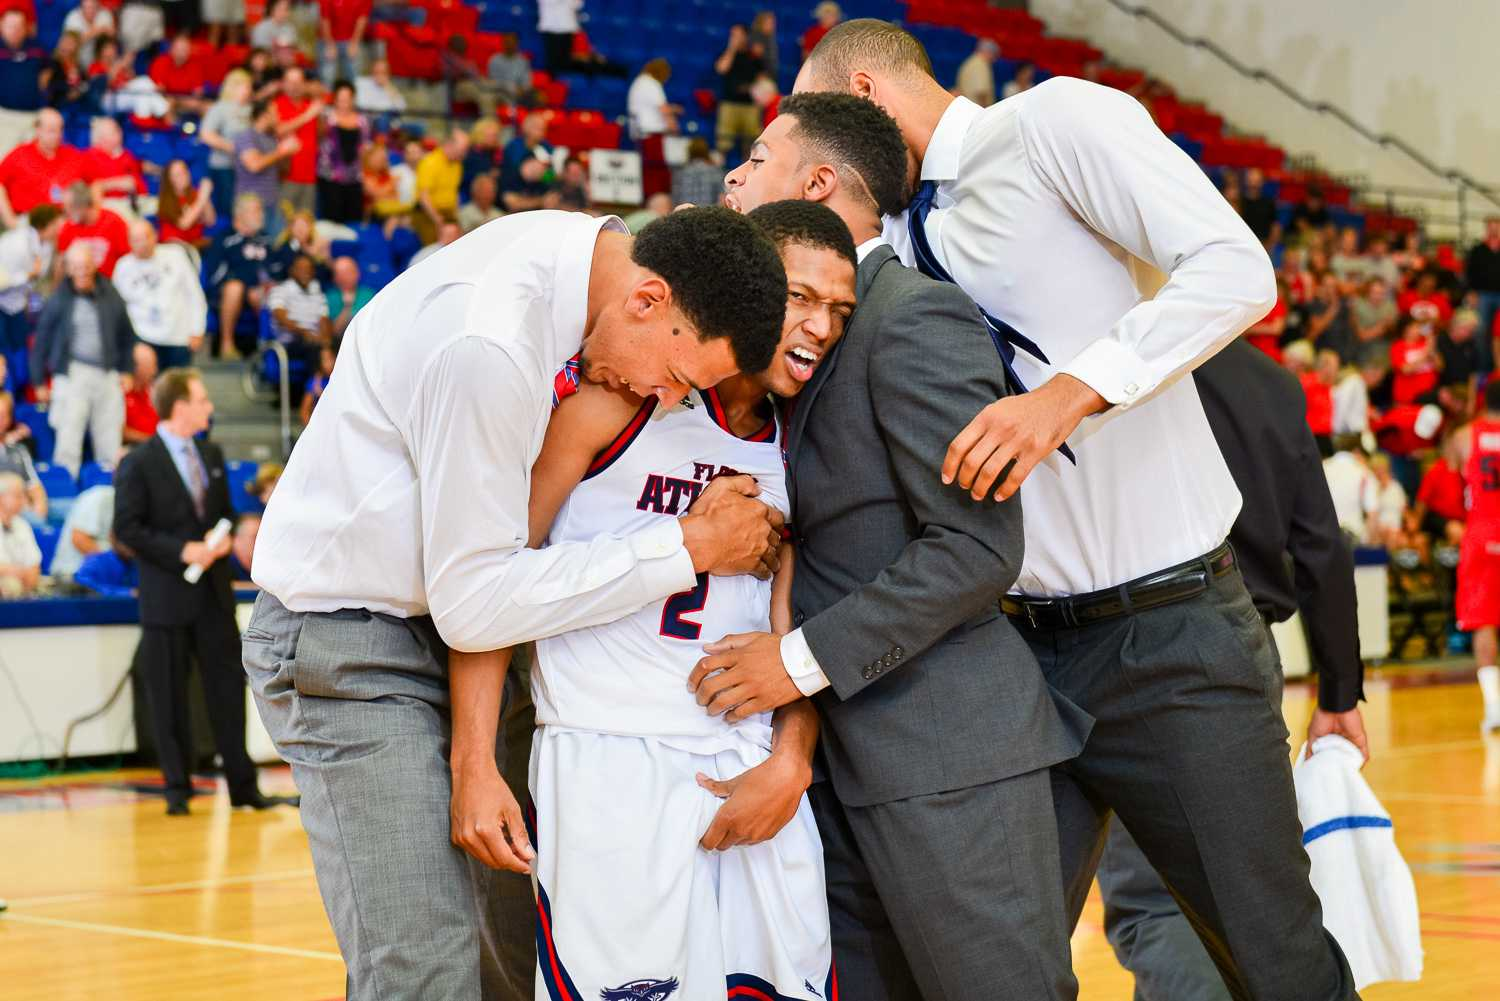 Botley (2) is embraced by his teammates after hitting a floater that forced overtime against Western Kentucky.